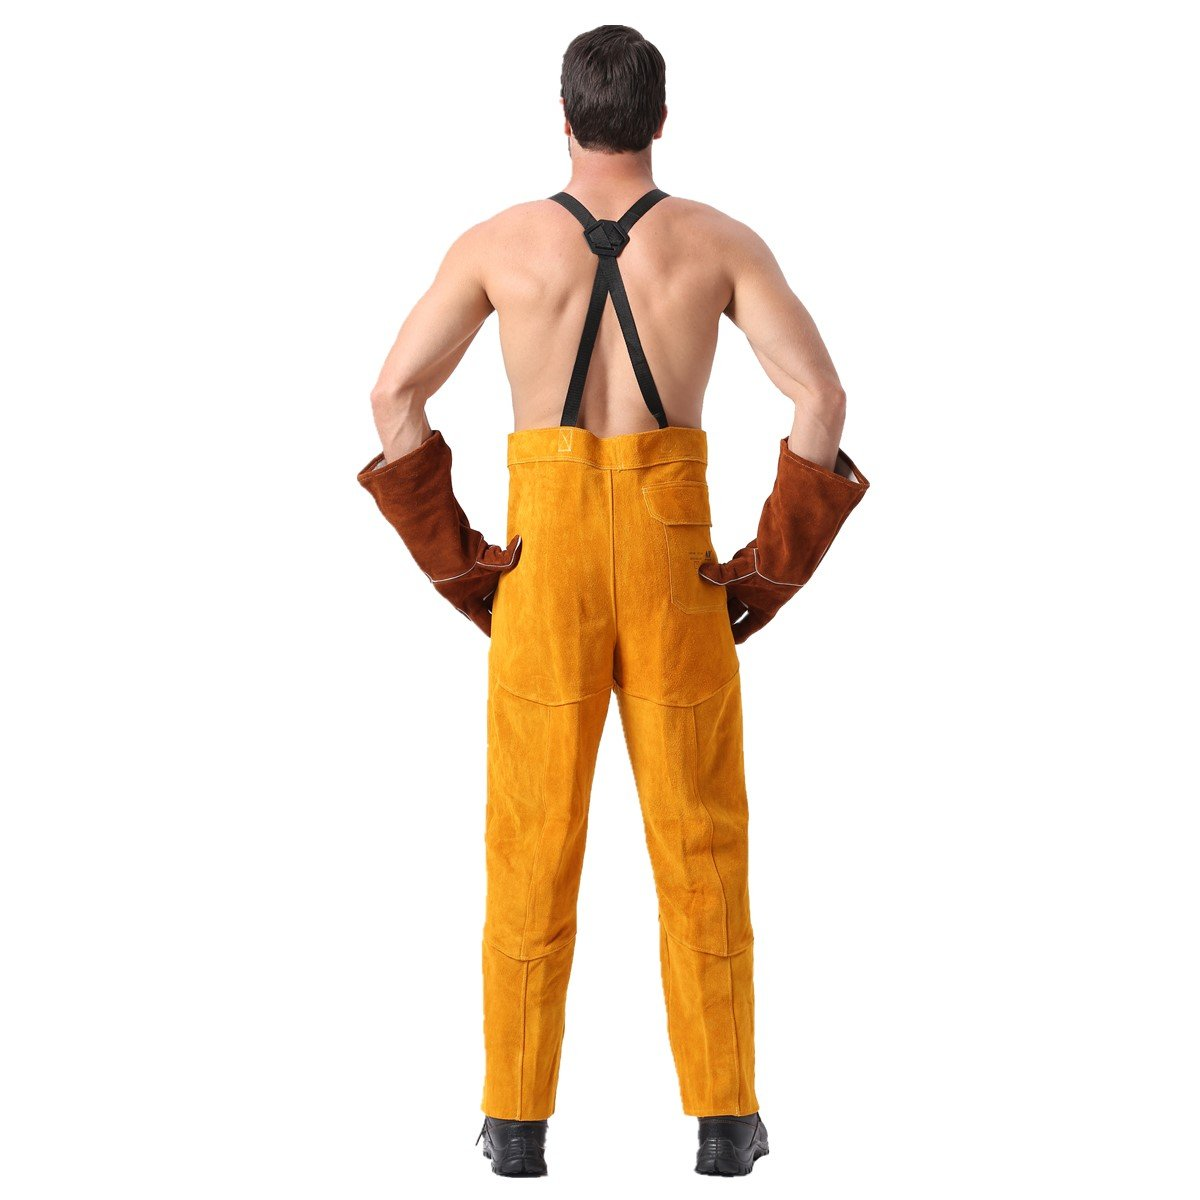 Leather Welding Pants Chaps Trousers Flame/Heat/Abrasion Resistant Cowhide Leather Worker Britches Romper for Welding Protection (XL) by Generic (Image #3)